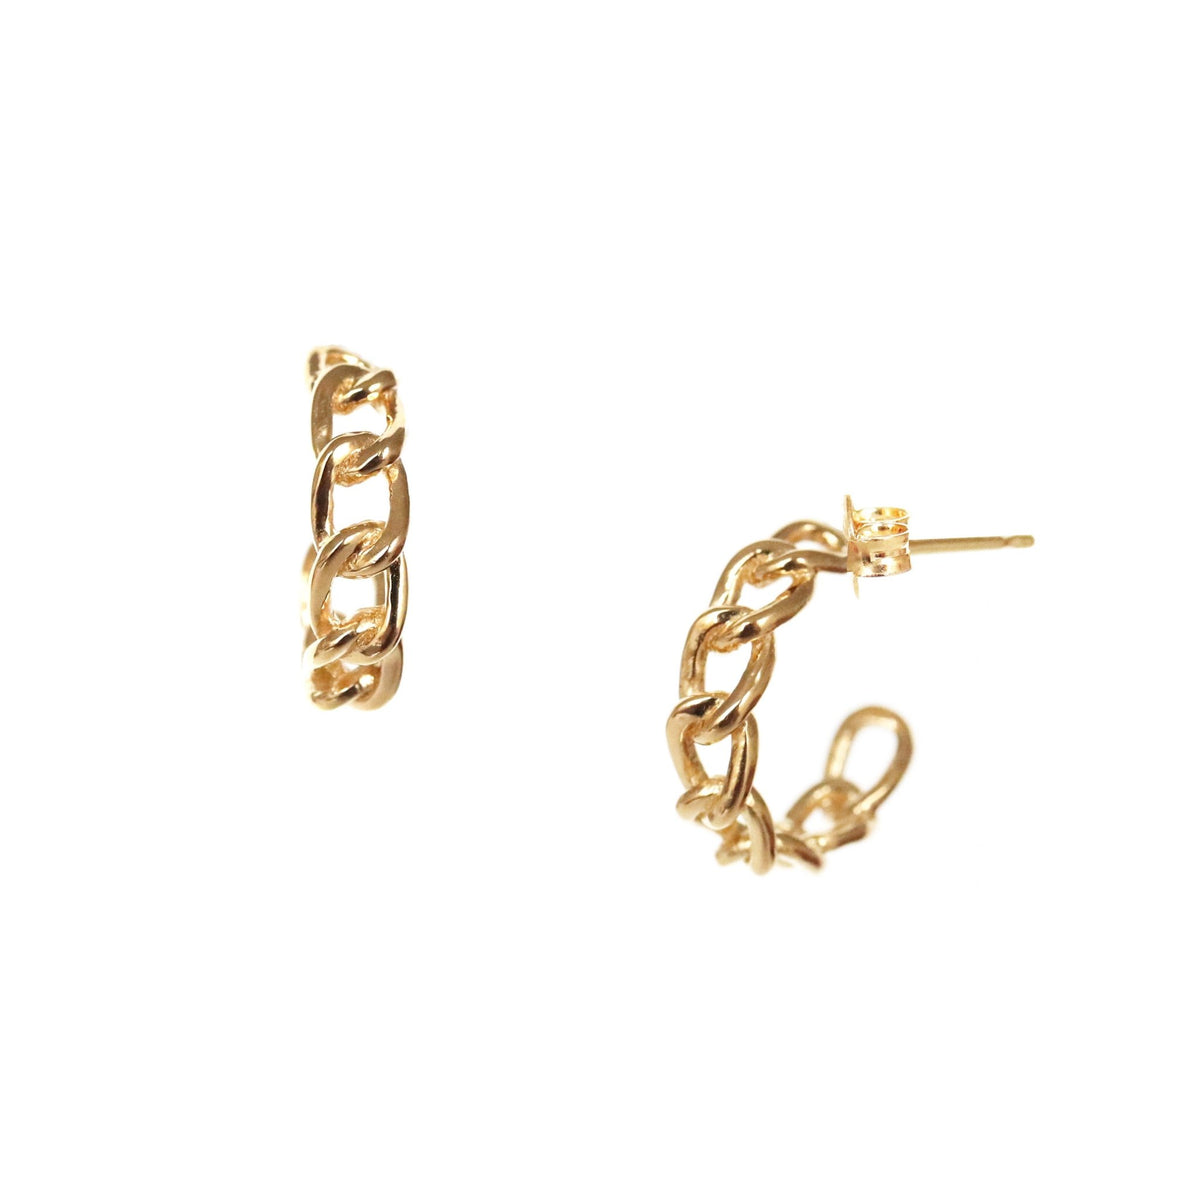 POISE CABLE LINK HUGGIE HOOPS - GOLD - SO PRETTY CARA COTTER